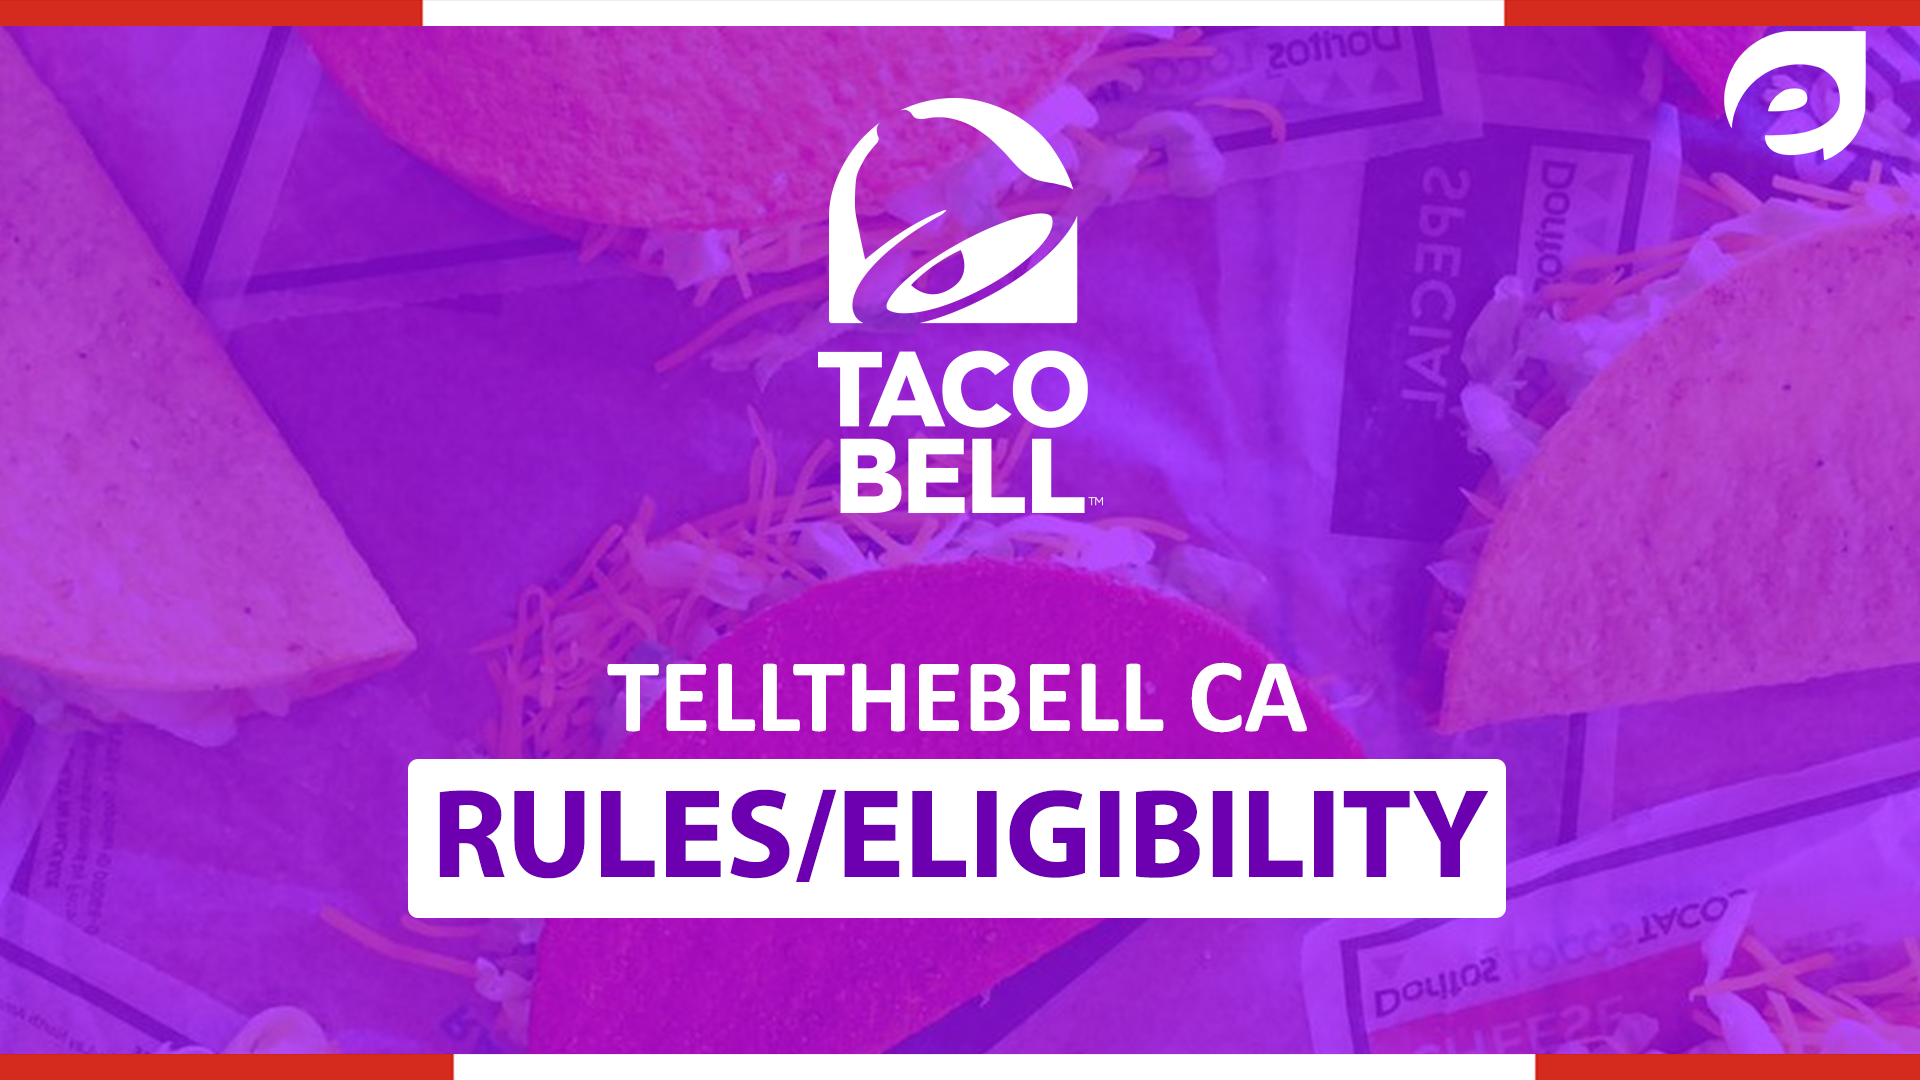 tellthebell ca - rules and eligibility